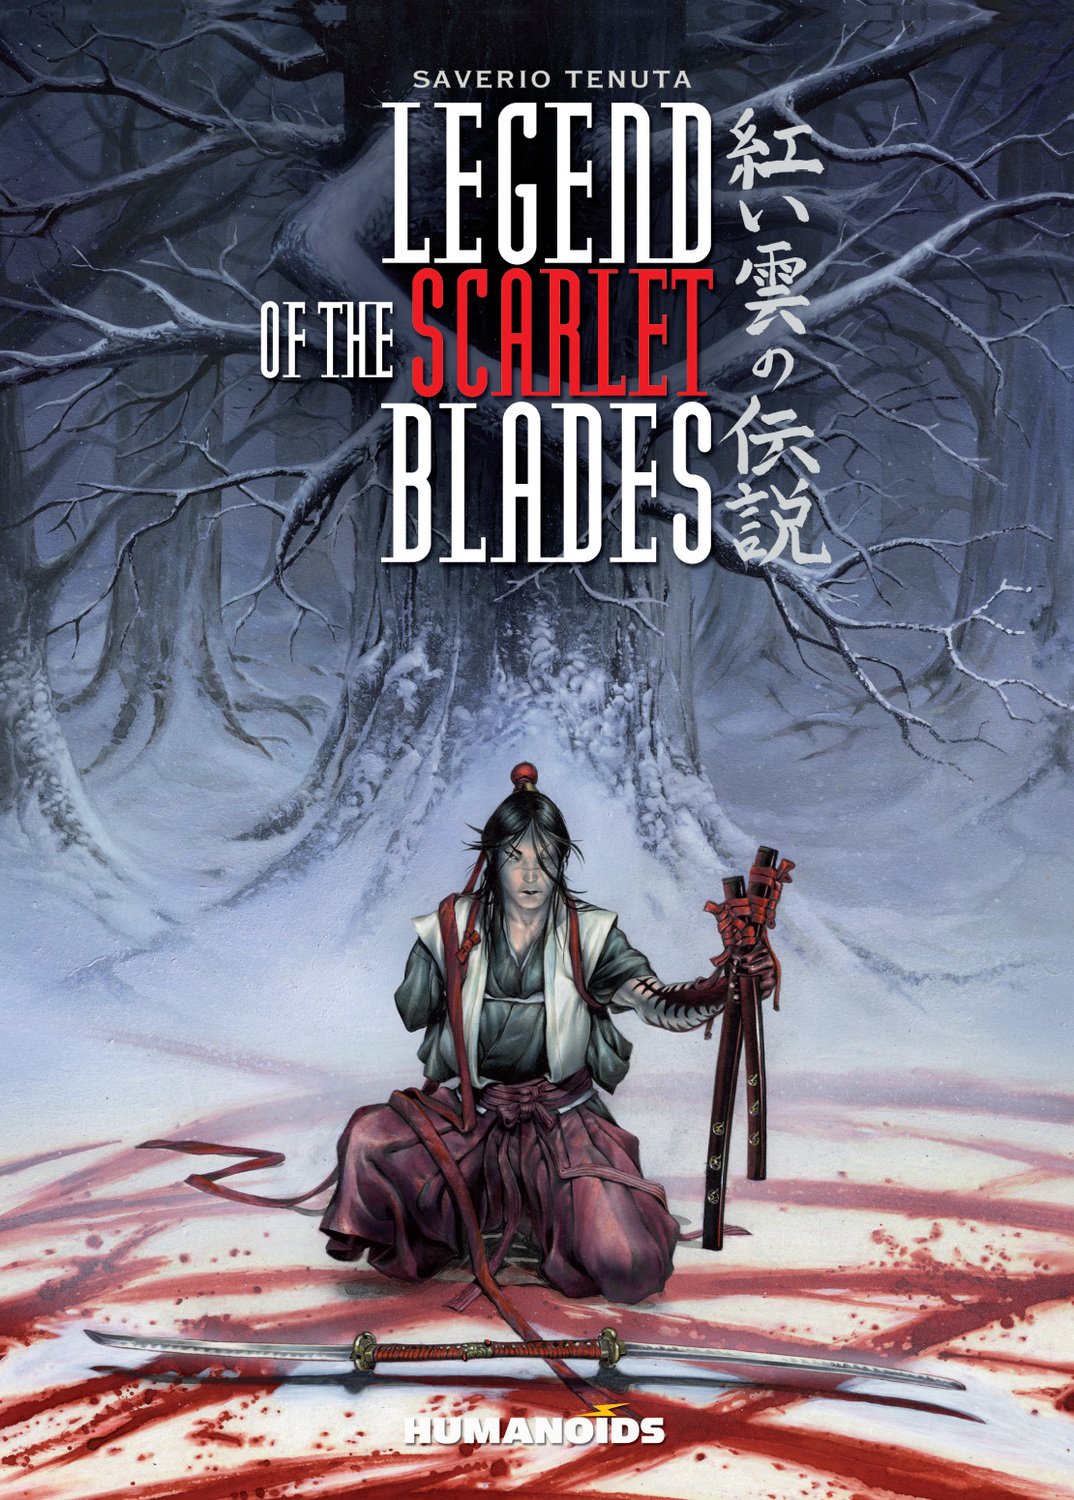 Legend of the Scarlet Blades - Hardcover Trade